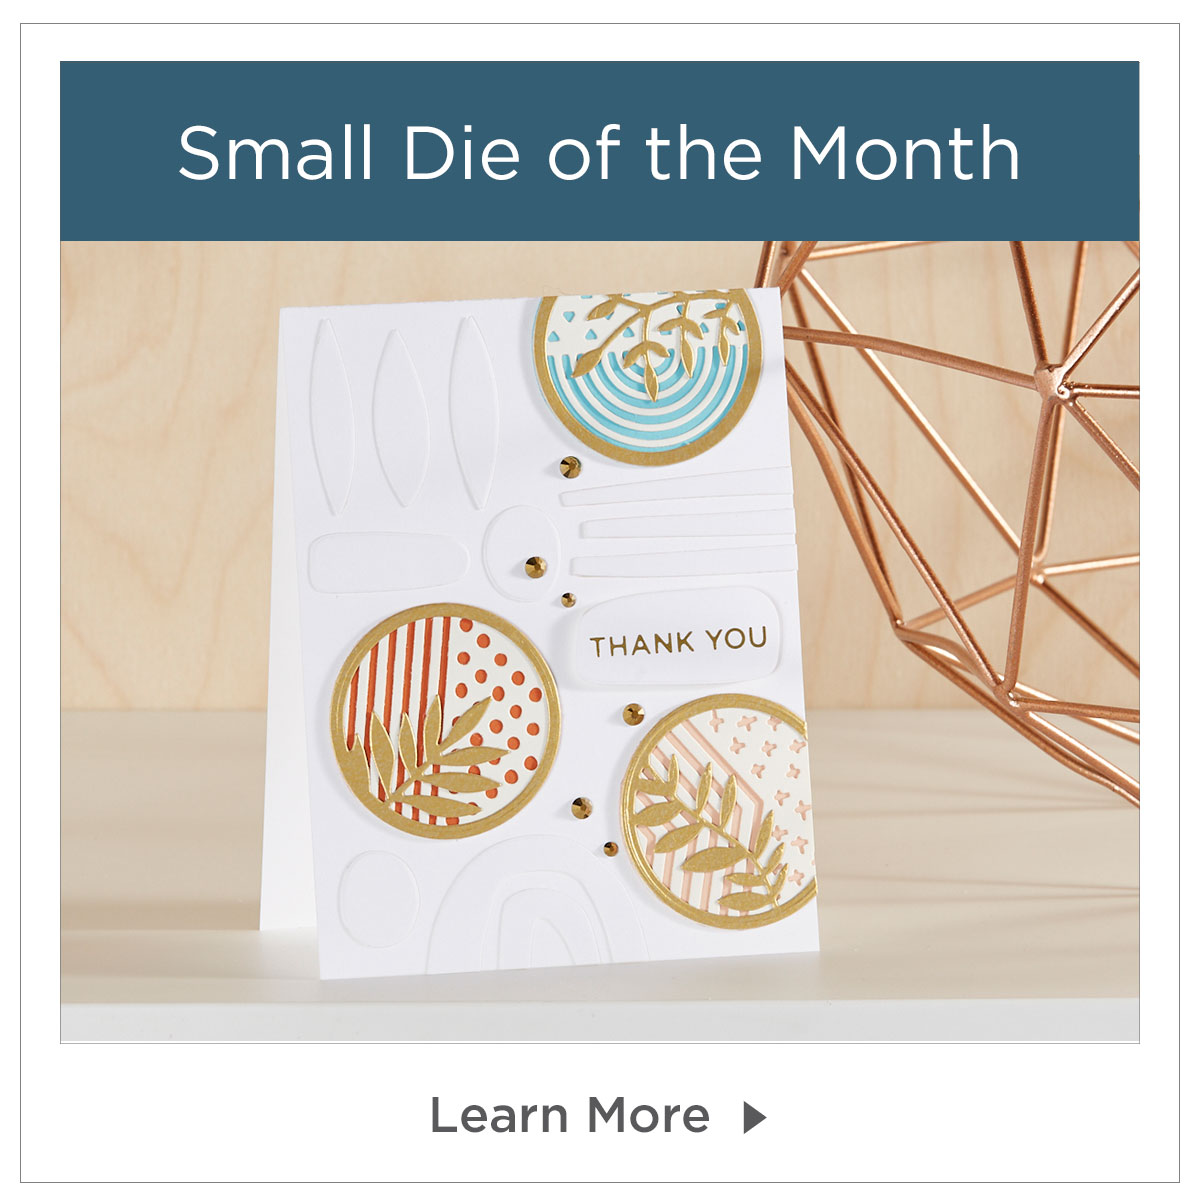 Small Die of the month